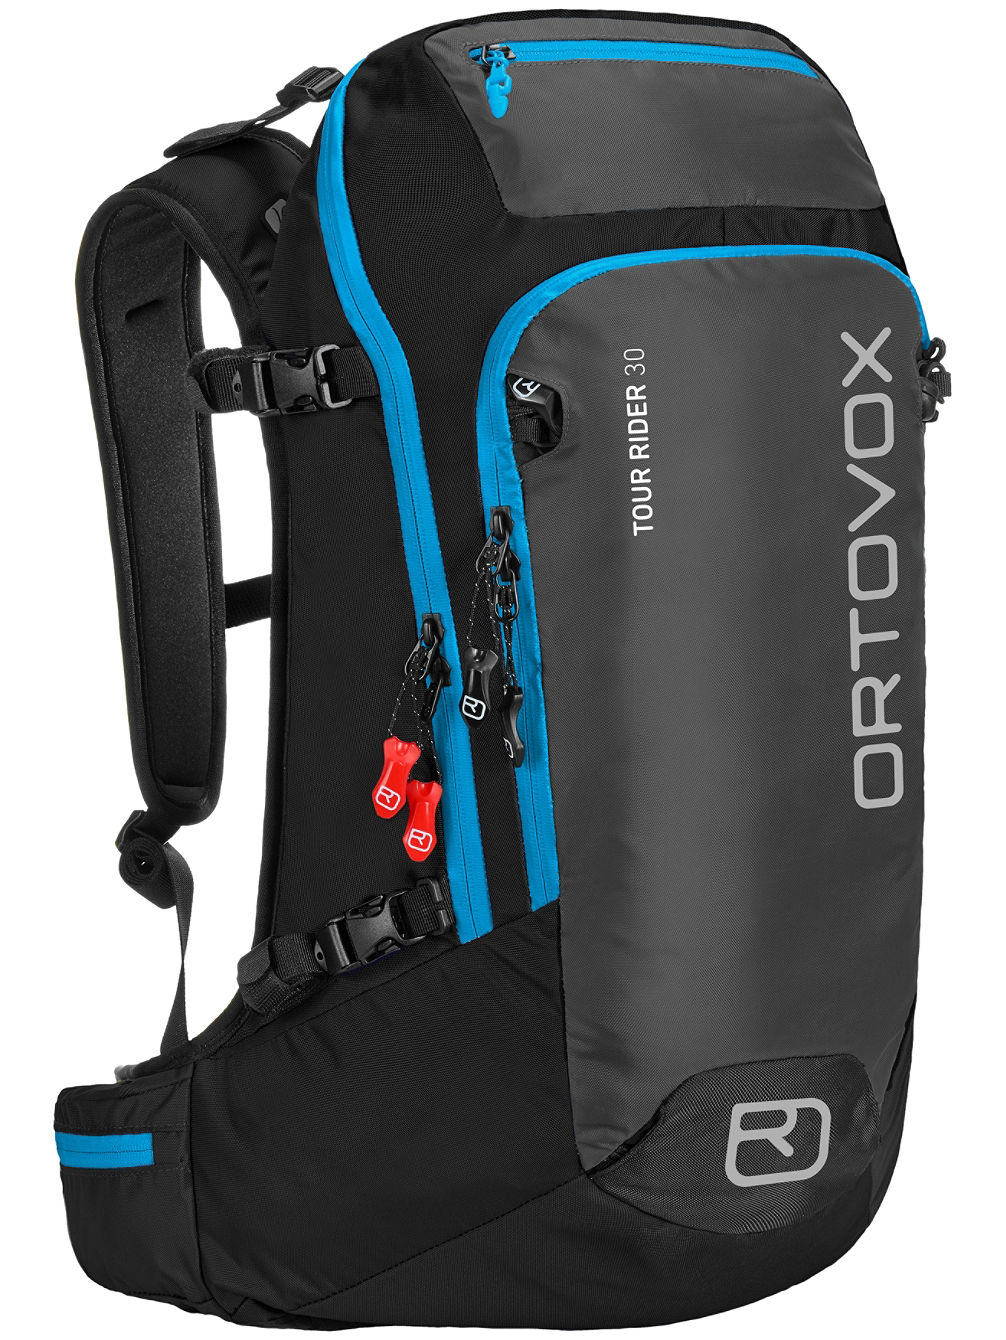 Tour Rider 30L Backpack